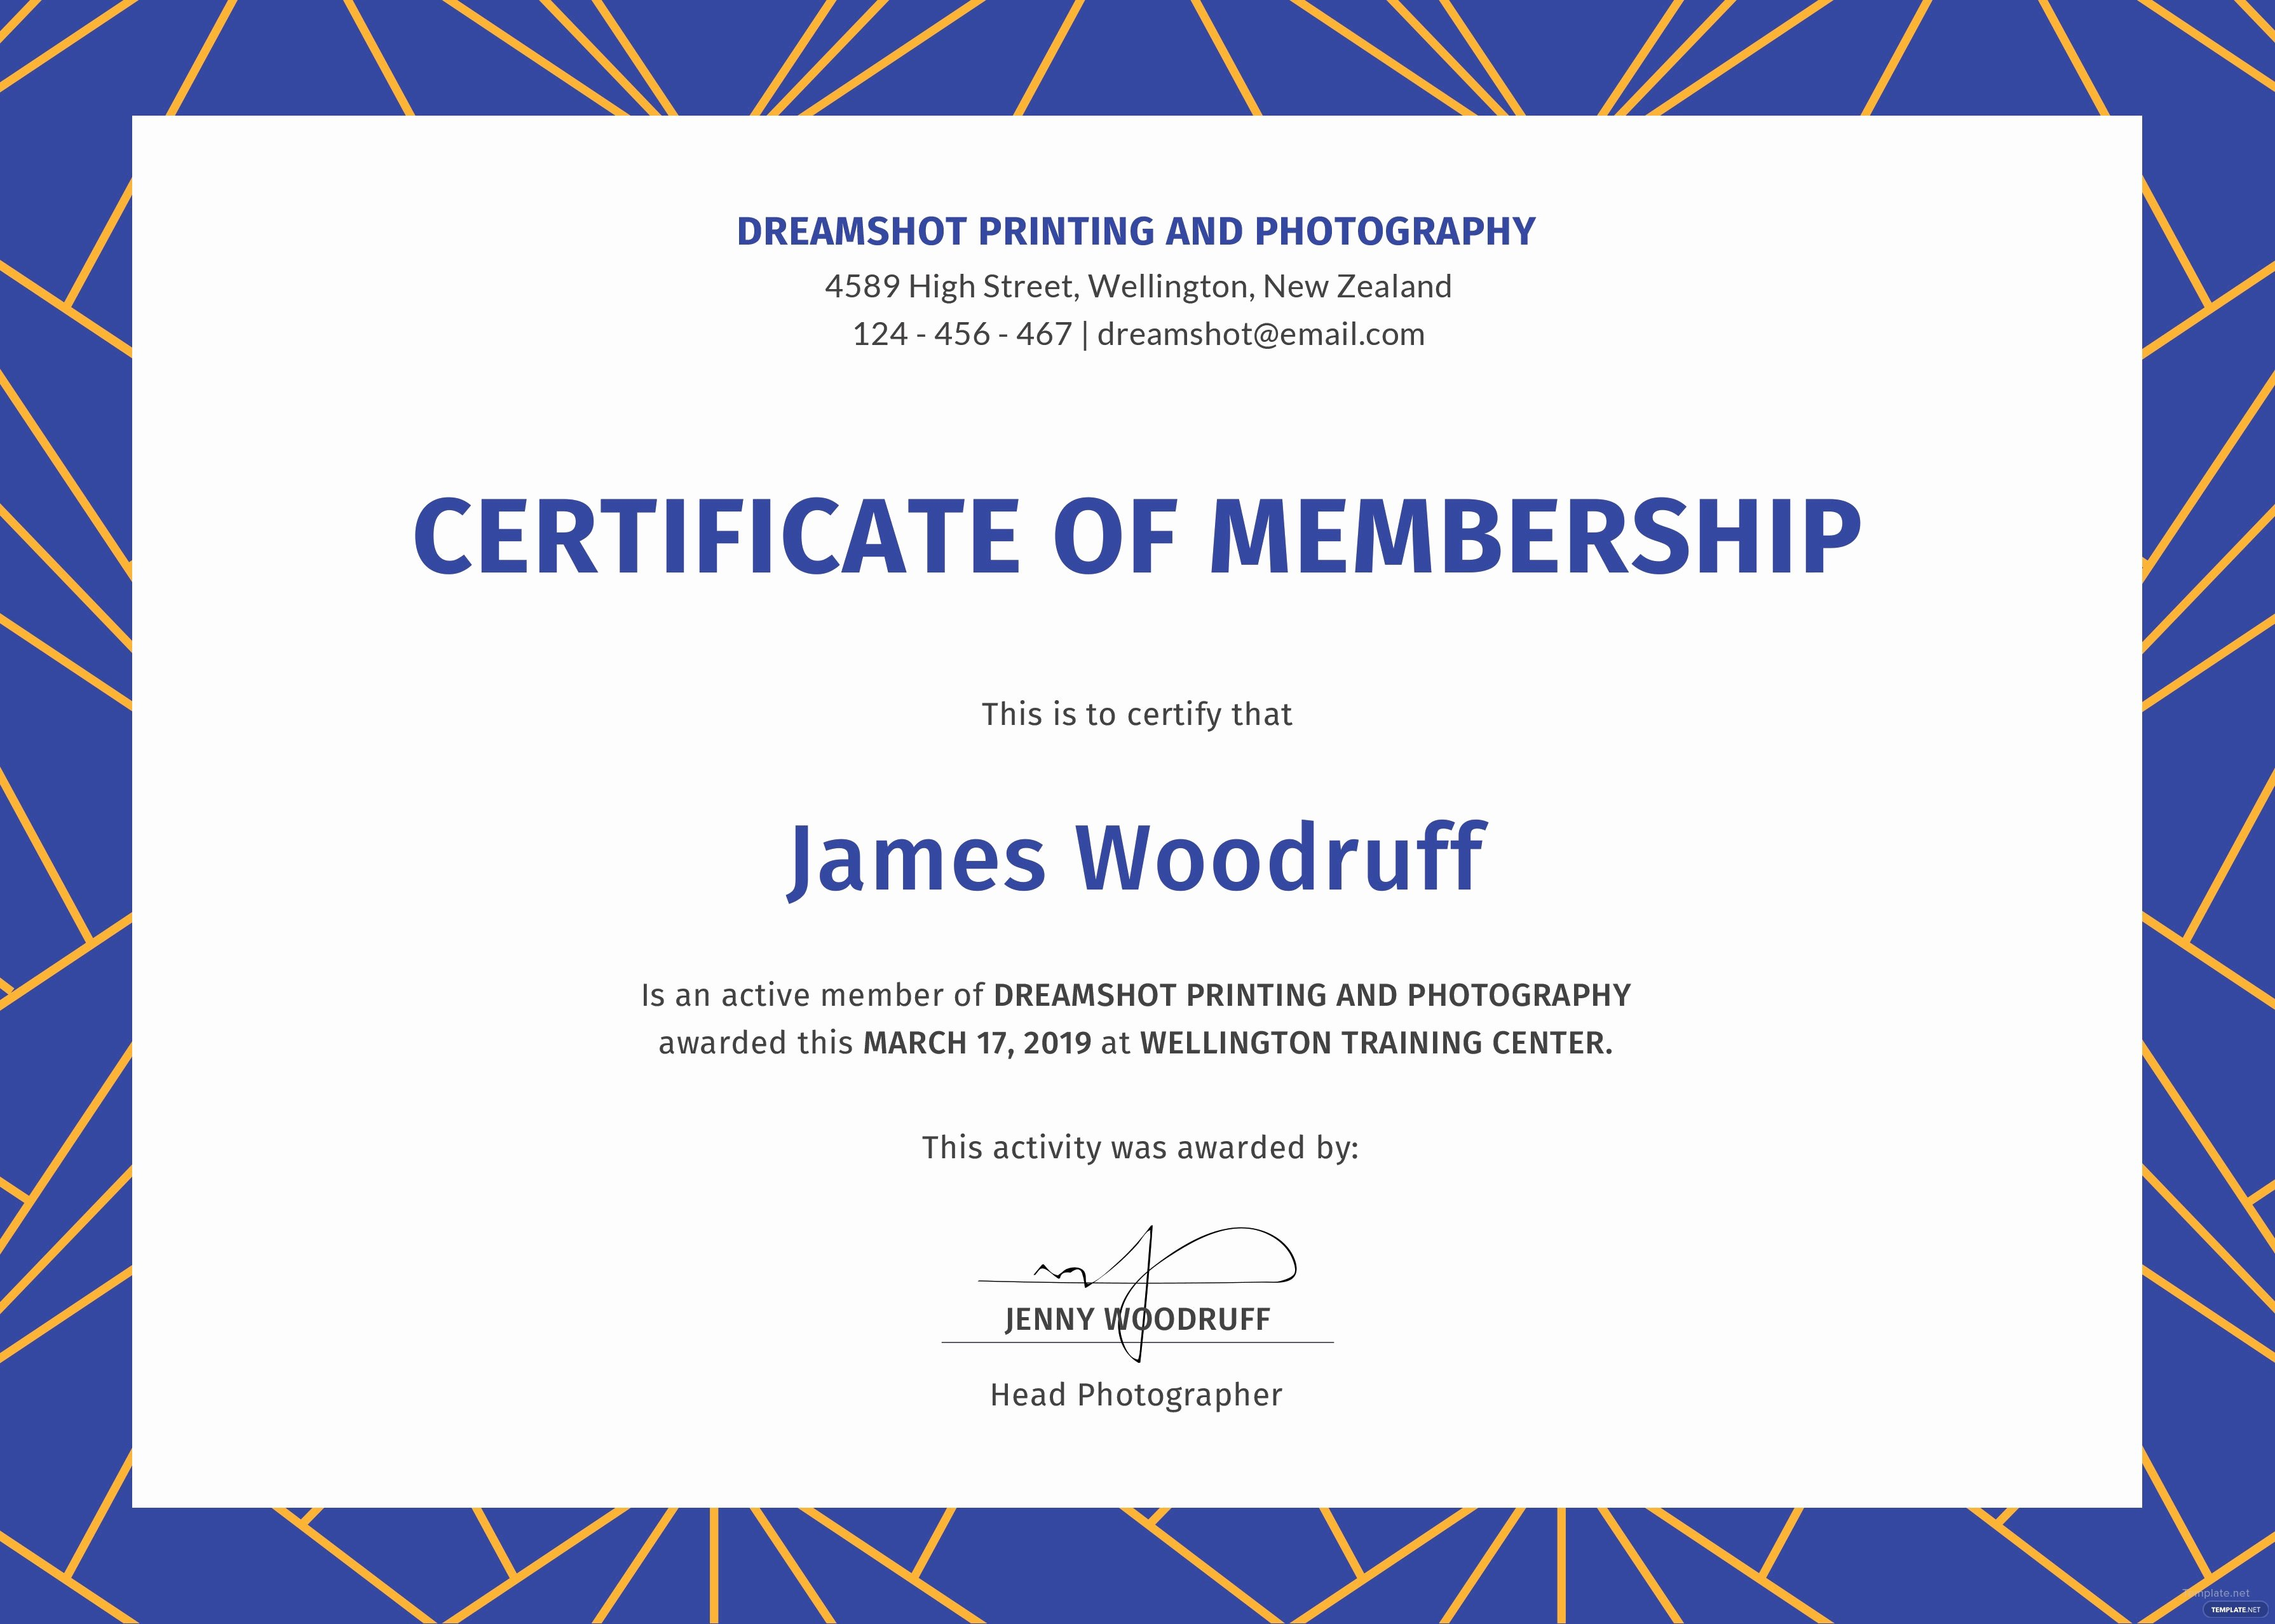 Church Membership Certificate Template Awesome Free Membership Certificate Template In Psd Ms Word